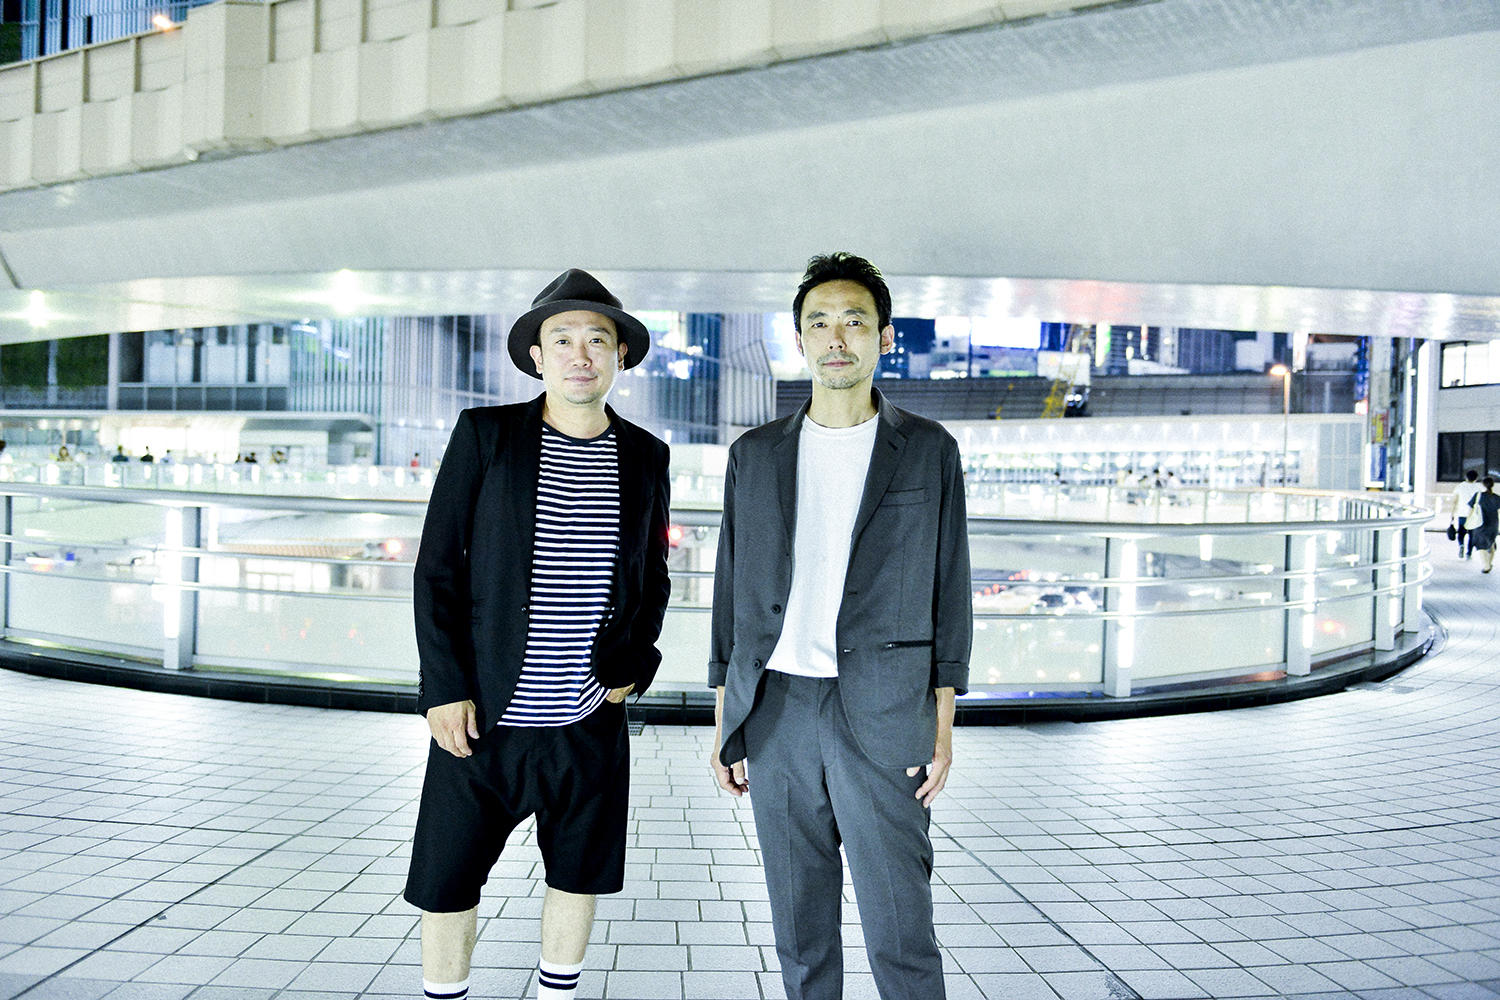 FRONTIER BACKYARD、有観客ライブ「Here again release party」を開催決定!